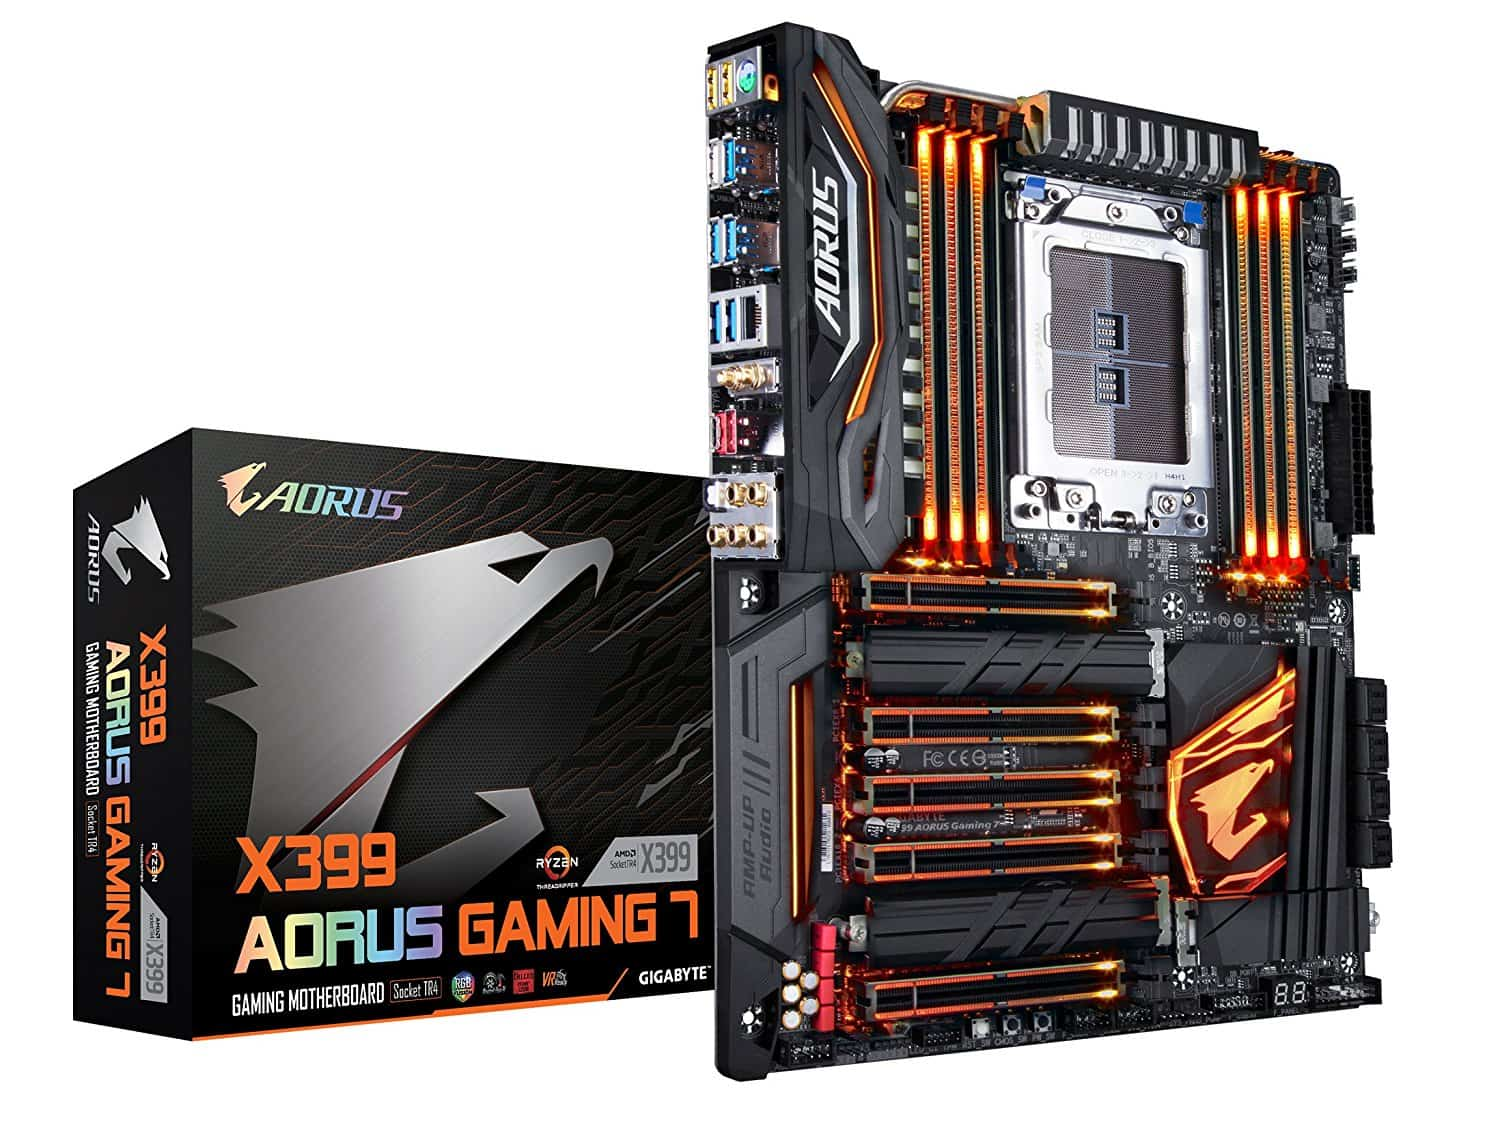 Gigabyte X399 Aorus Gaming 7 (Rev 1.0), RGB Fusion, Triple M.2, Front & Rear USB 3.1 Gen 2 Type-C